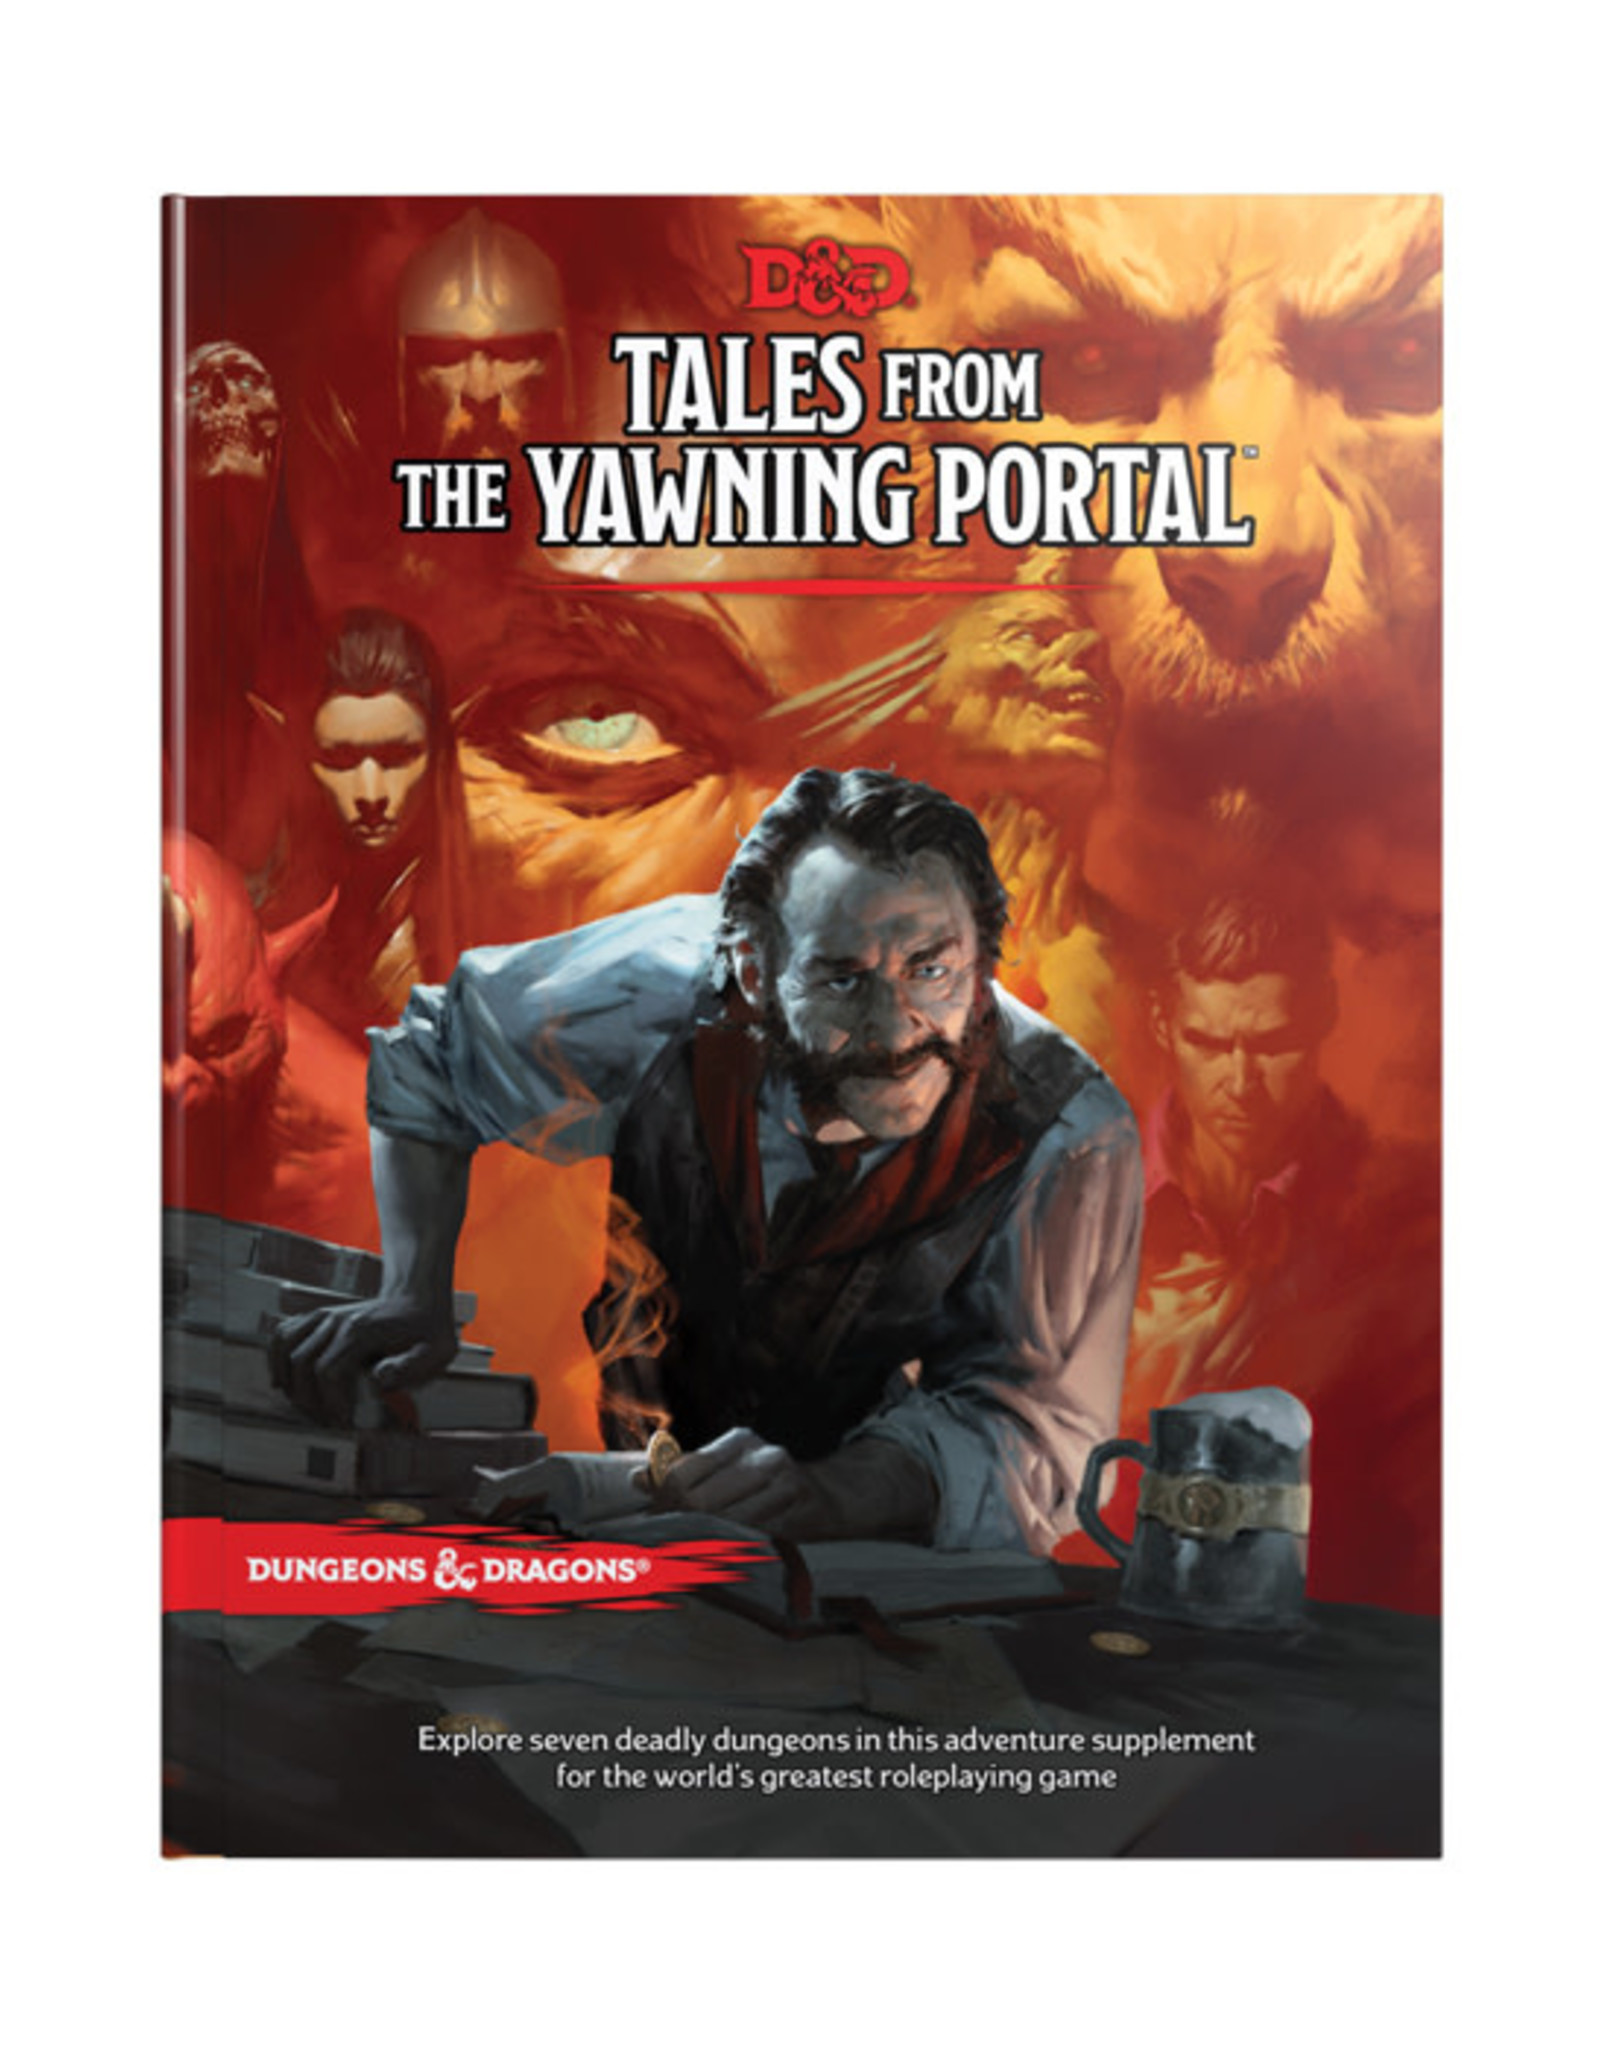 Dungeons & Dragons Dungeons & Dragons: 5th Edition - Tales from the Yawning Portal